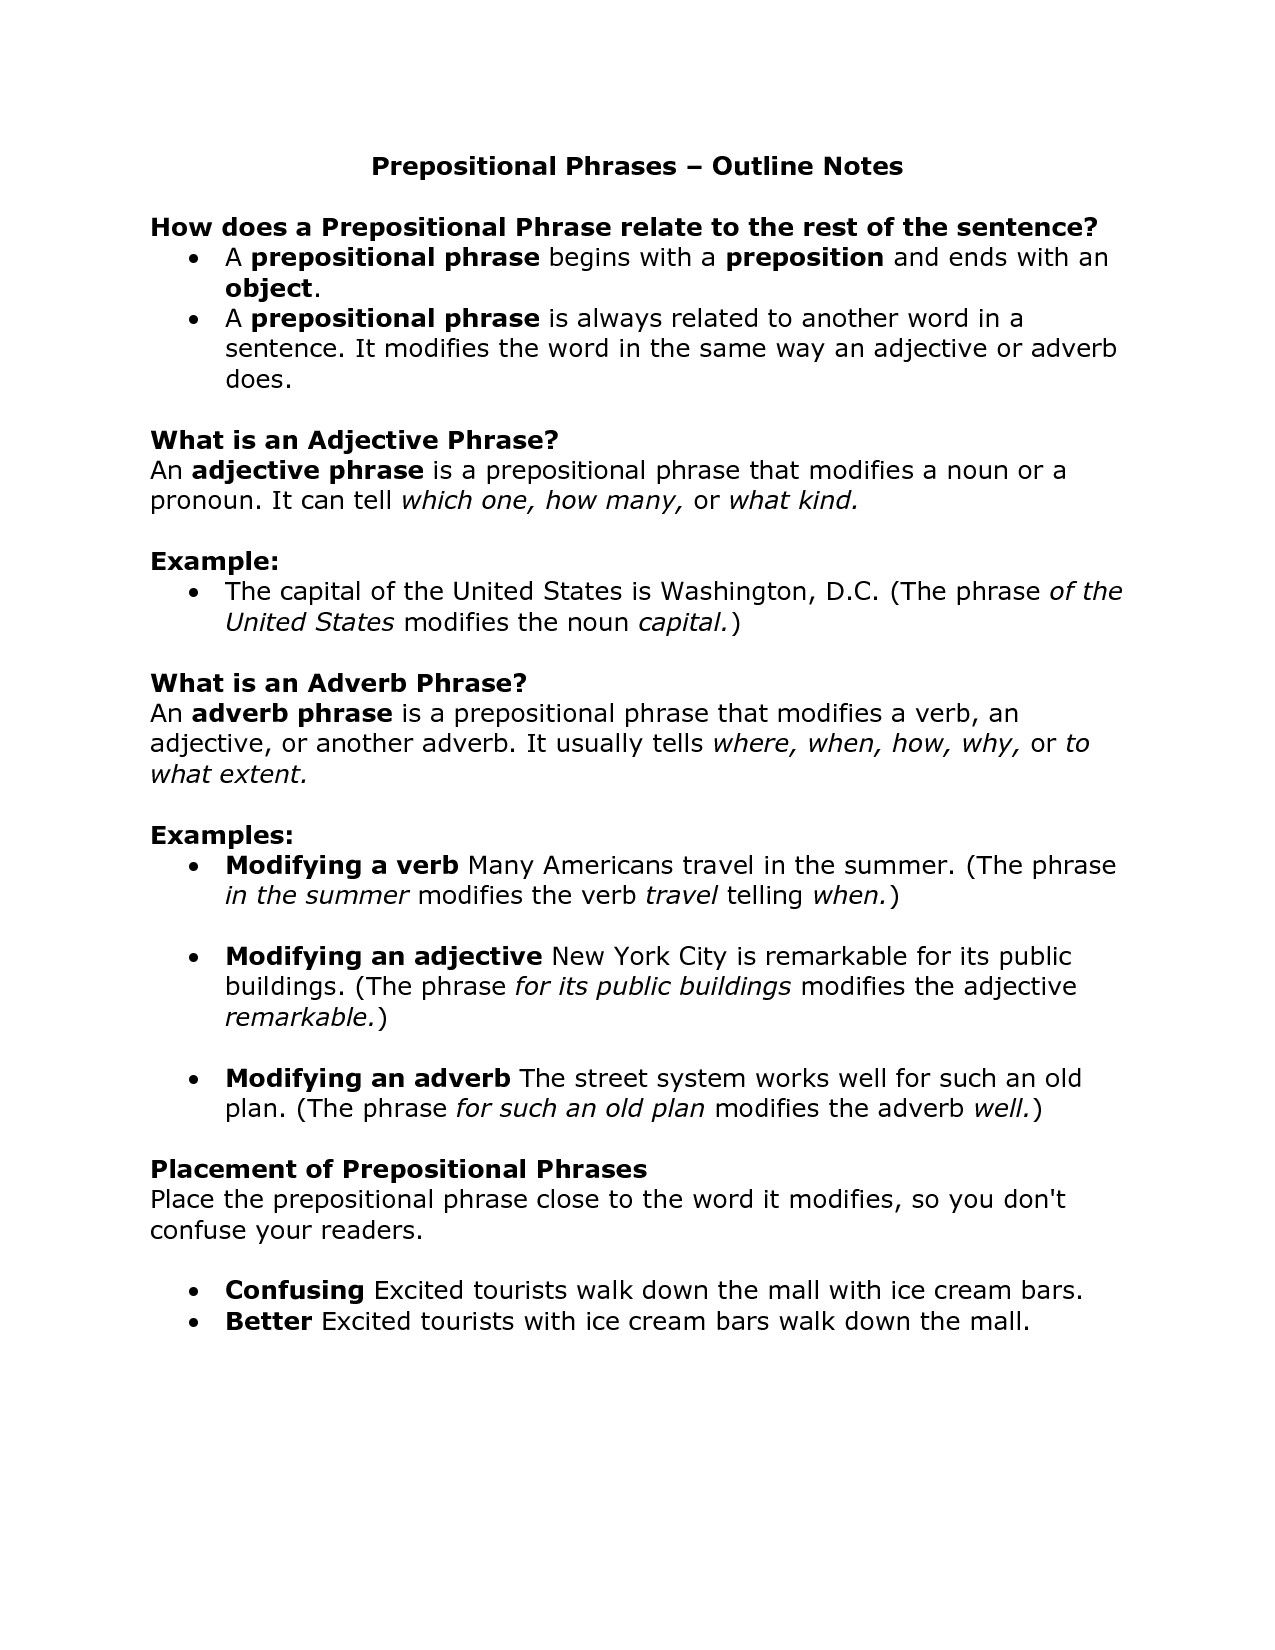 Adverbial Phrase Worksheets   Printable Worksheets and Activities for  Teachers [ 1650 x 1275 Pixel ]